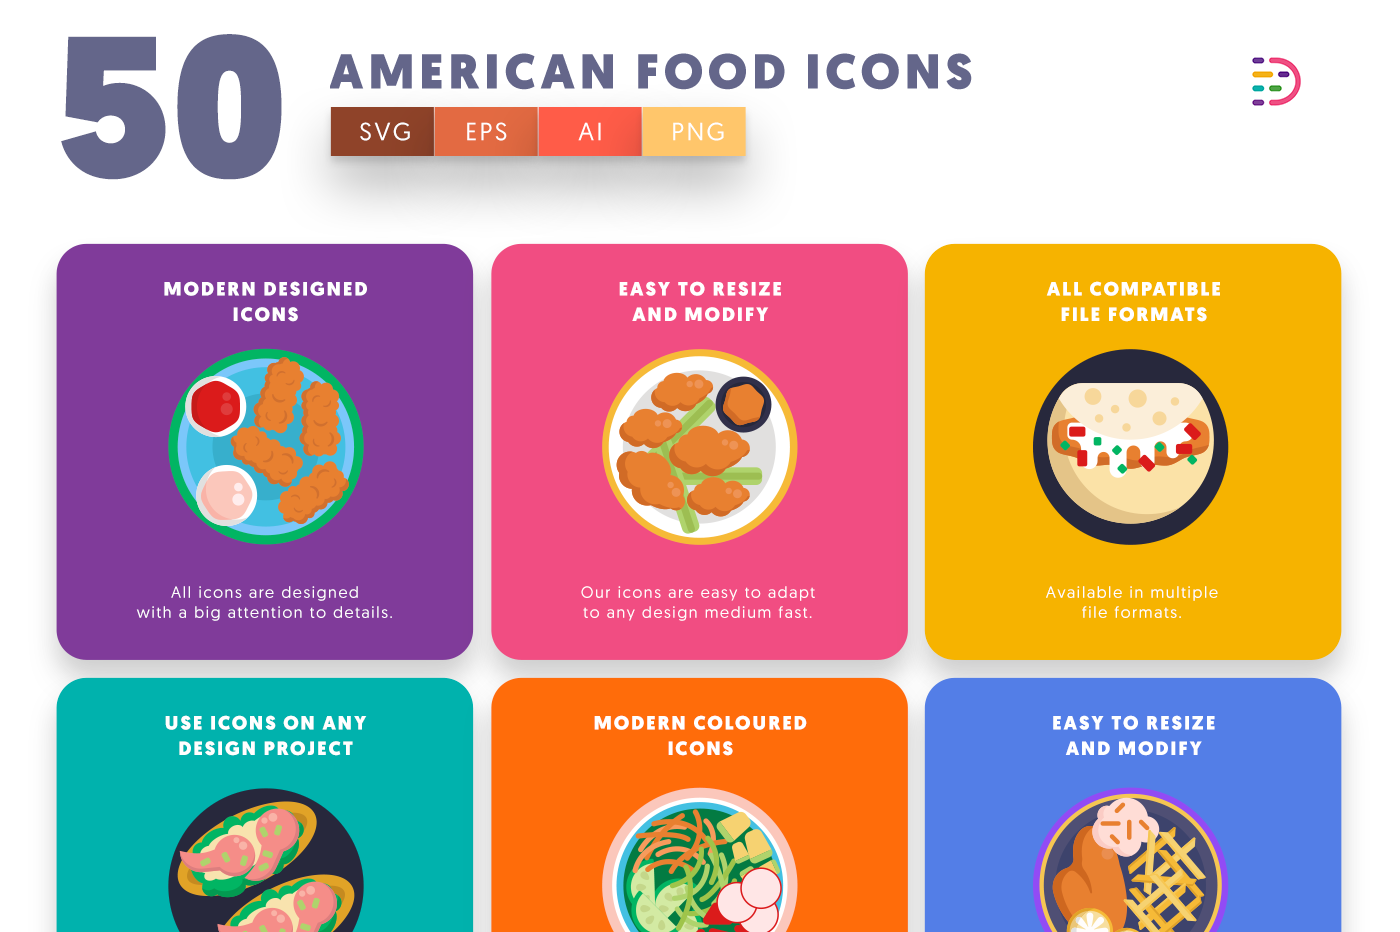 50 American Food Icons with colored backgrounds